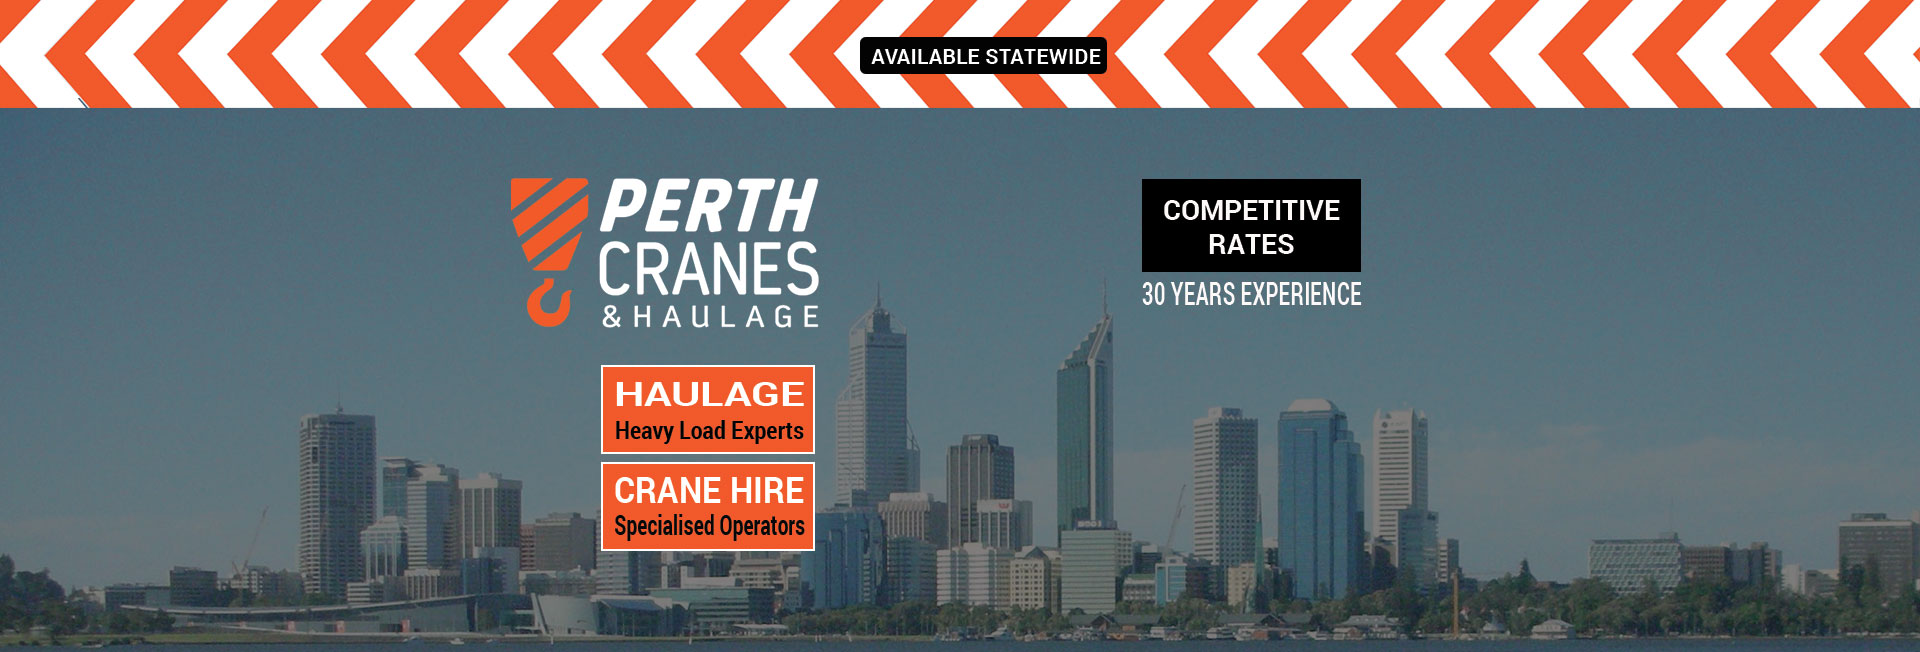 Home Perth Cranes & Haulage - Crane Hire Perth